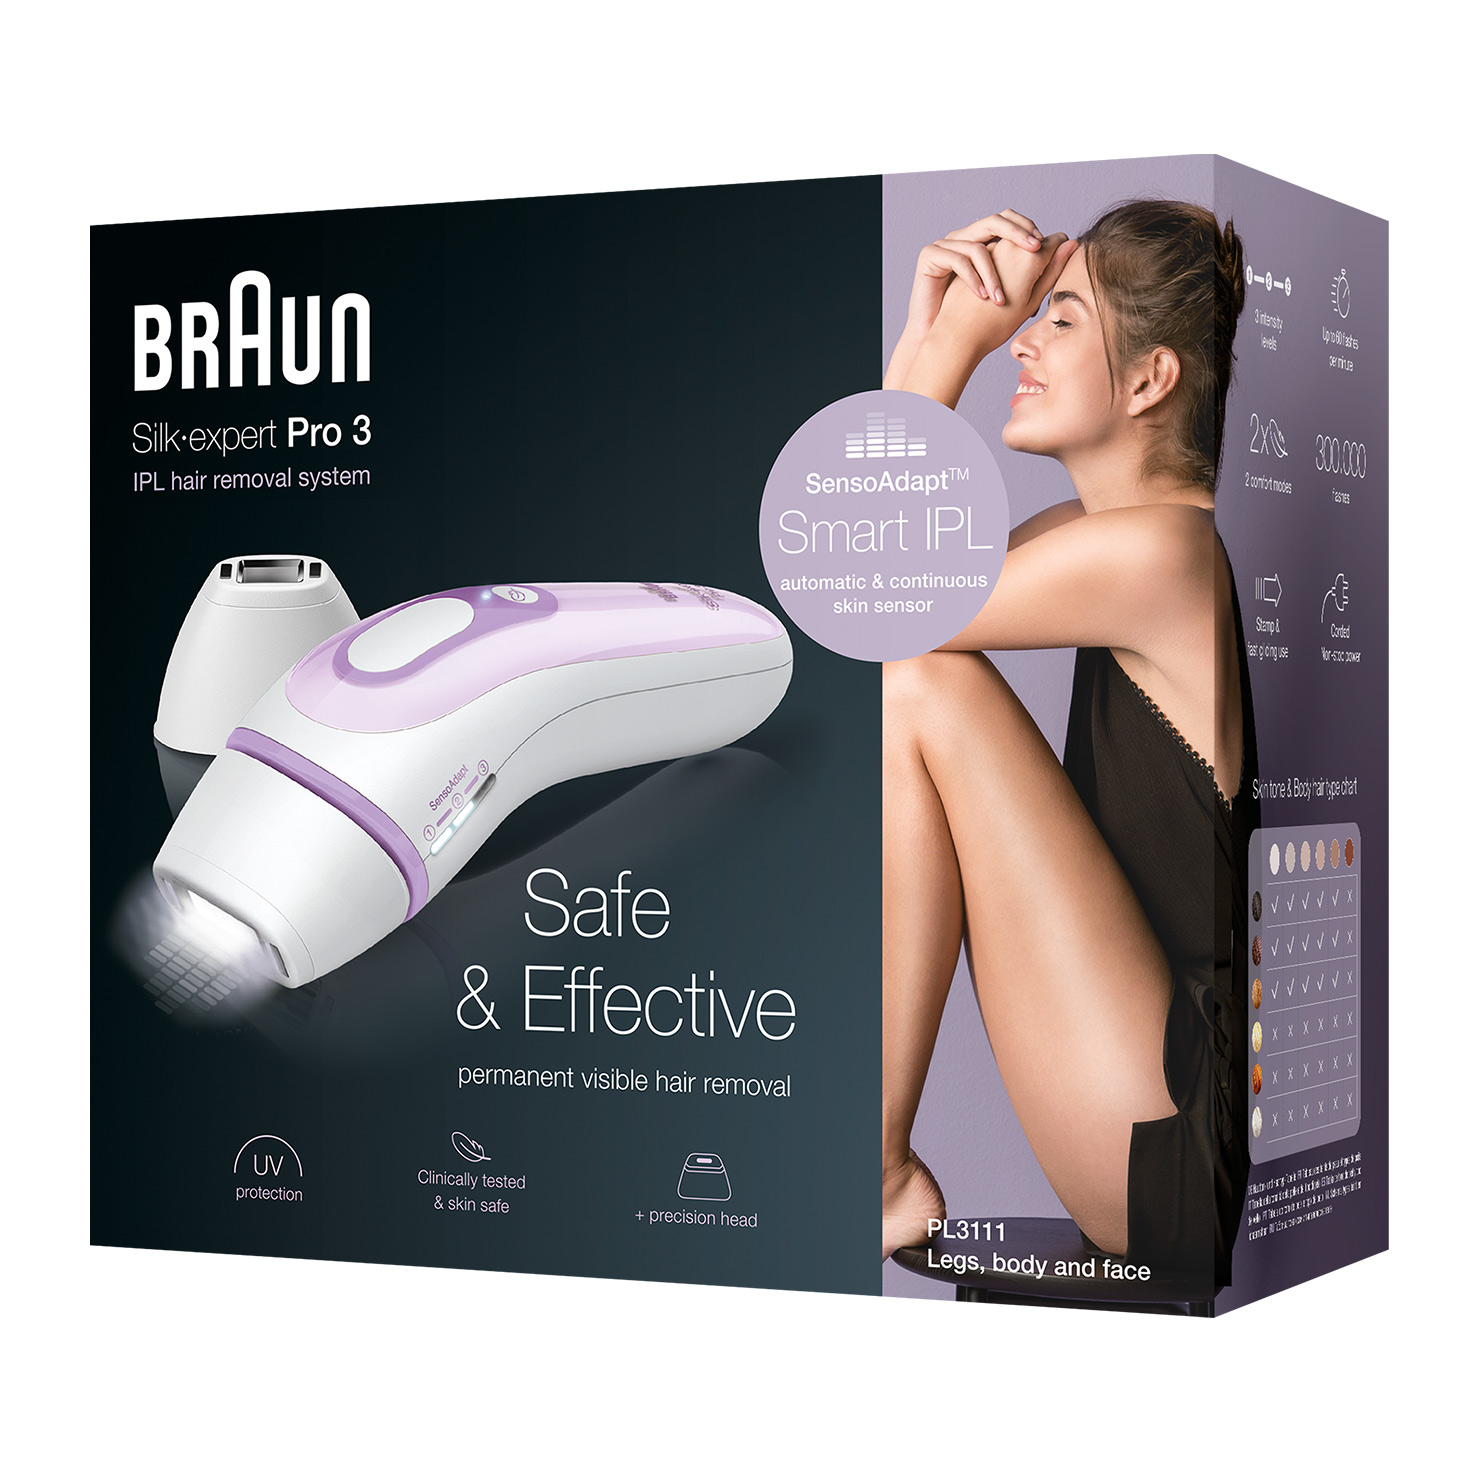 Braun Silk-expert Pro 3 PL3011 - Packaging